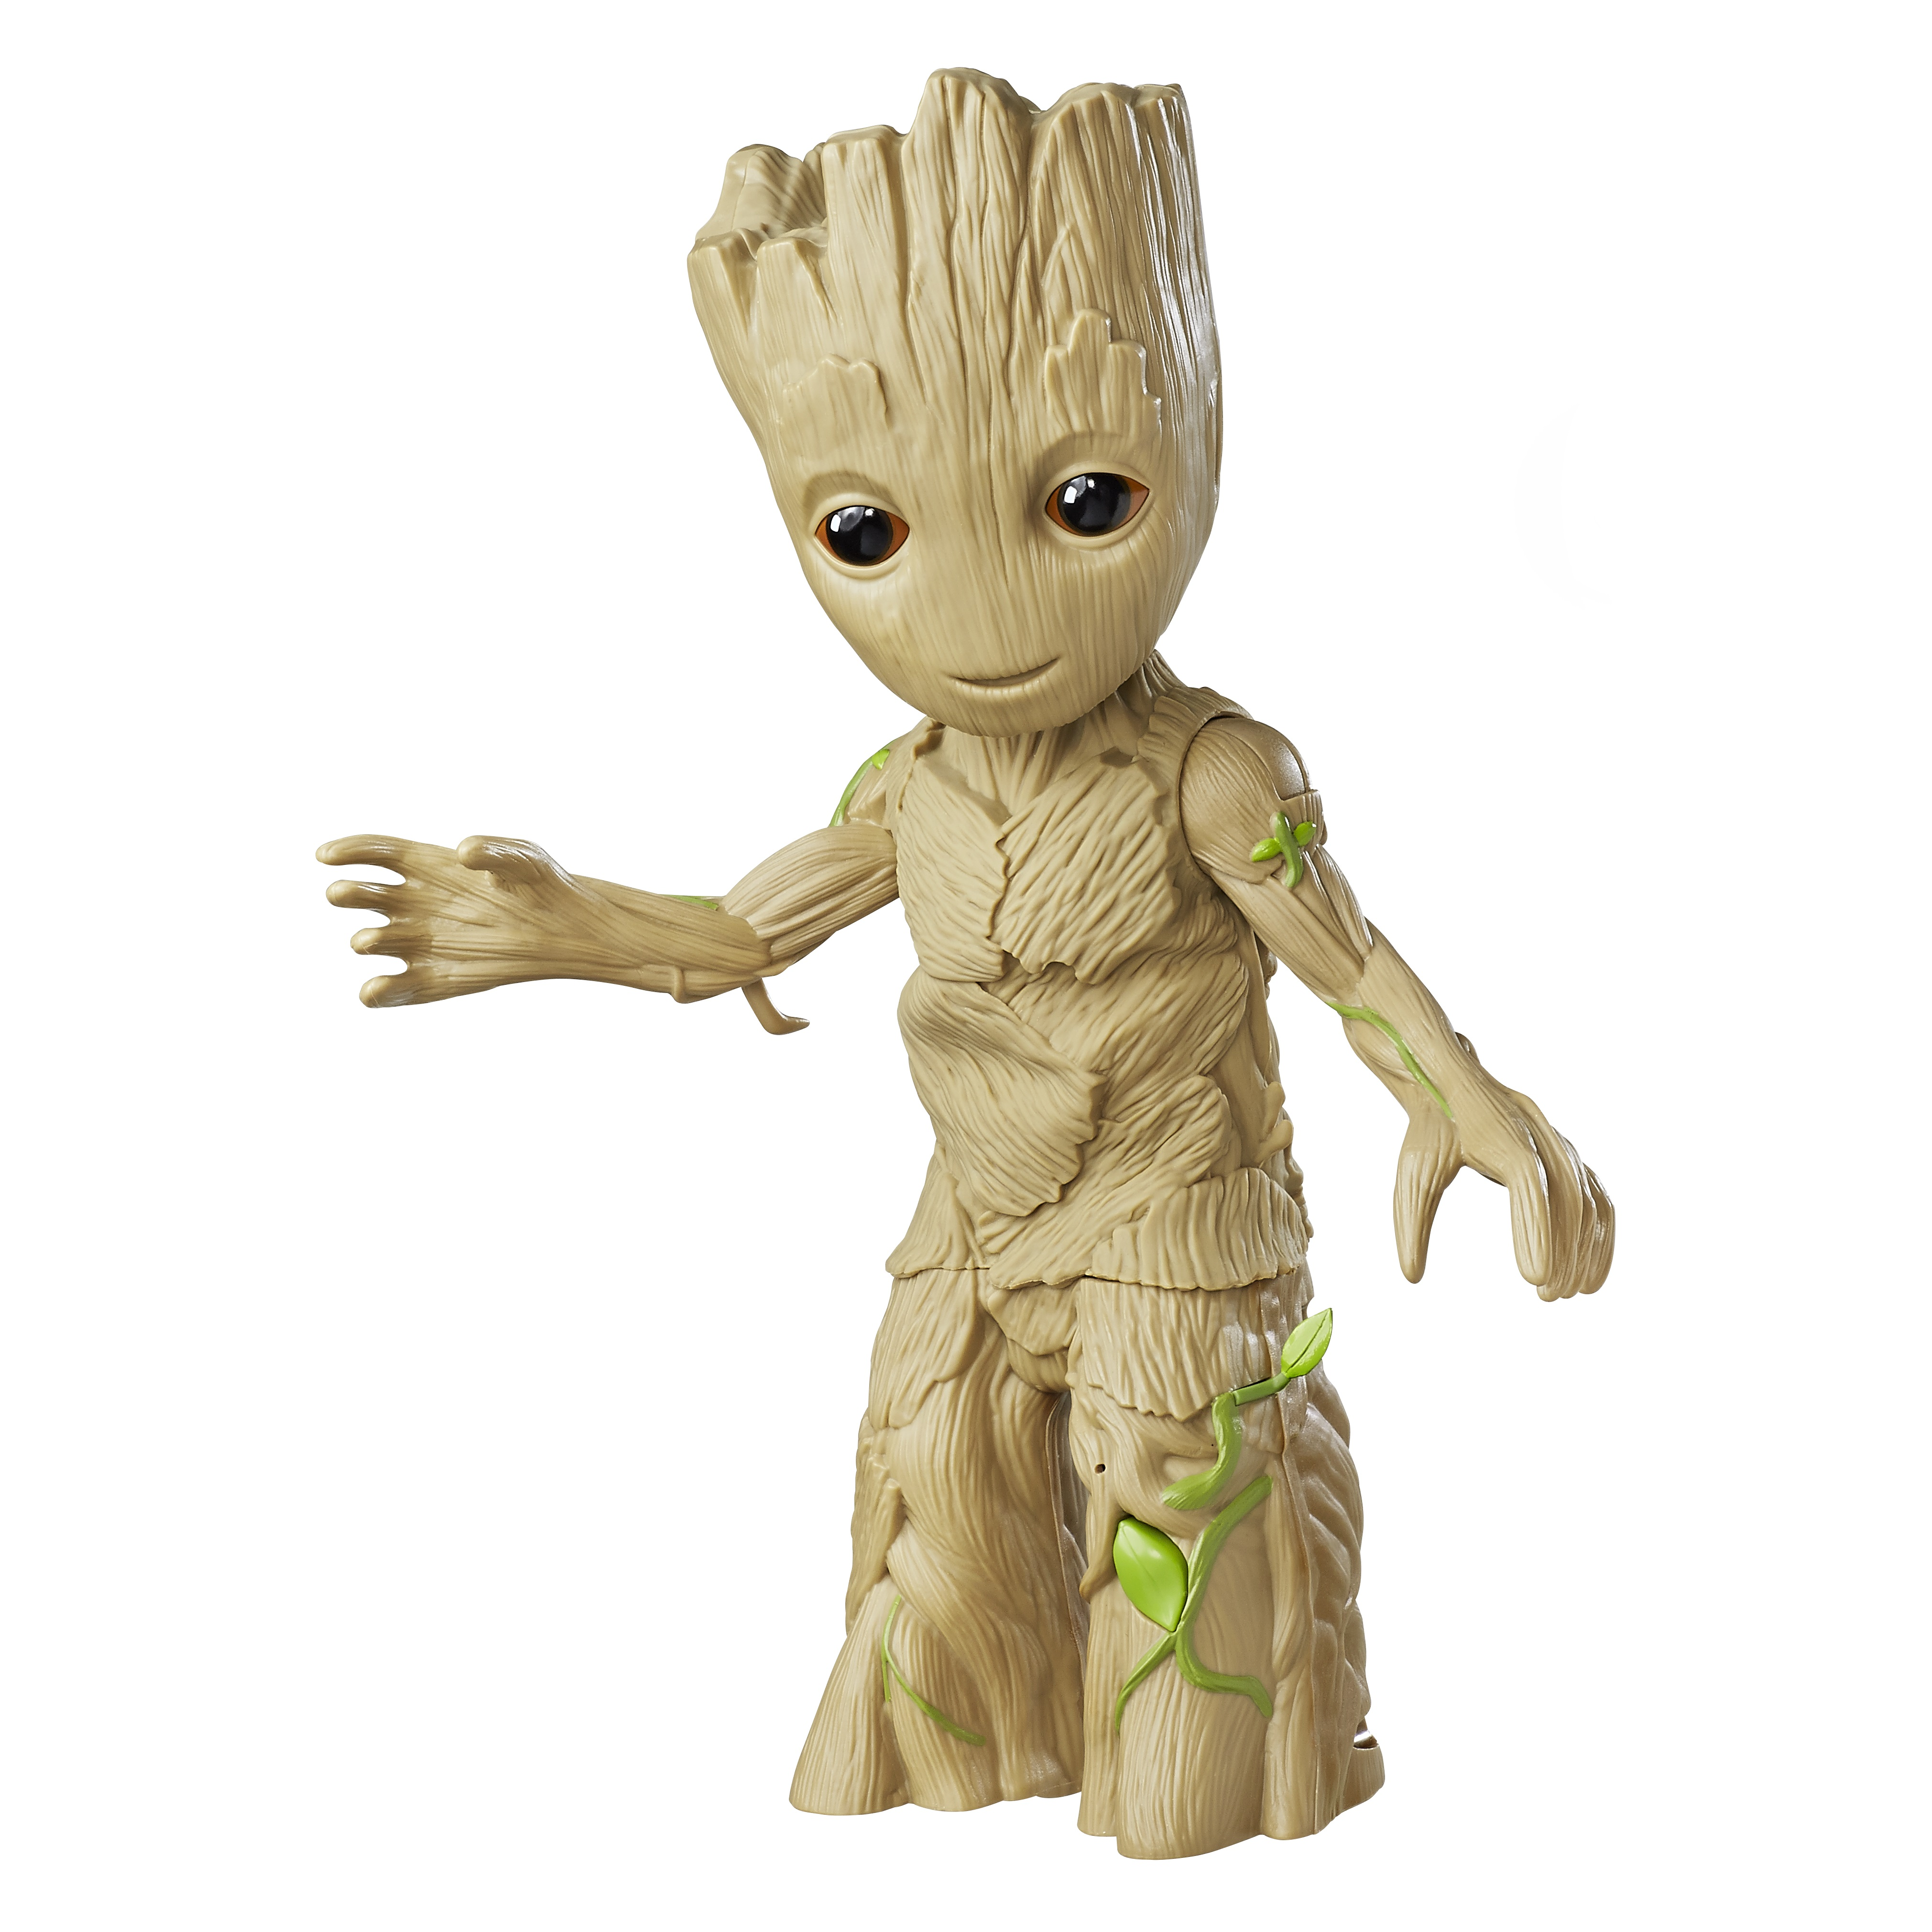 MARVEL GUARDIANS OF THE GALAXY VOL. 2 DANCING GROOT Figure - oop